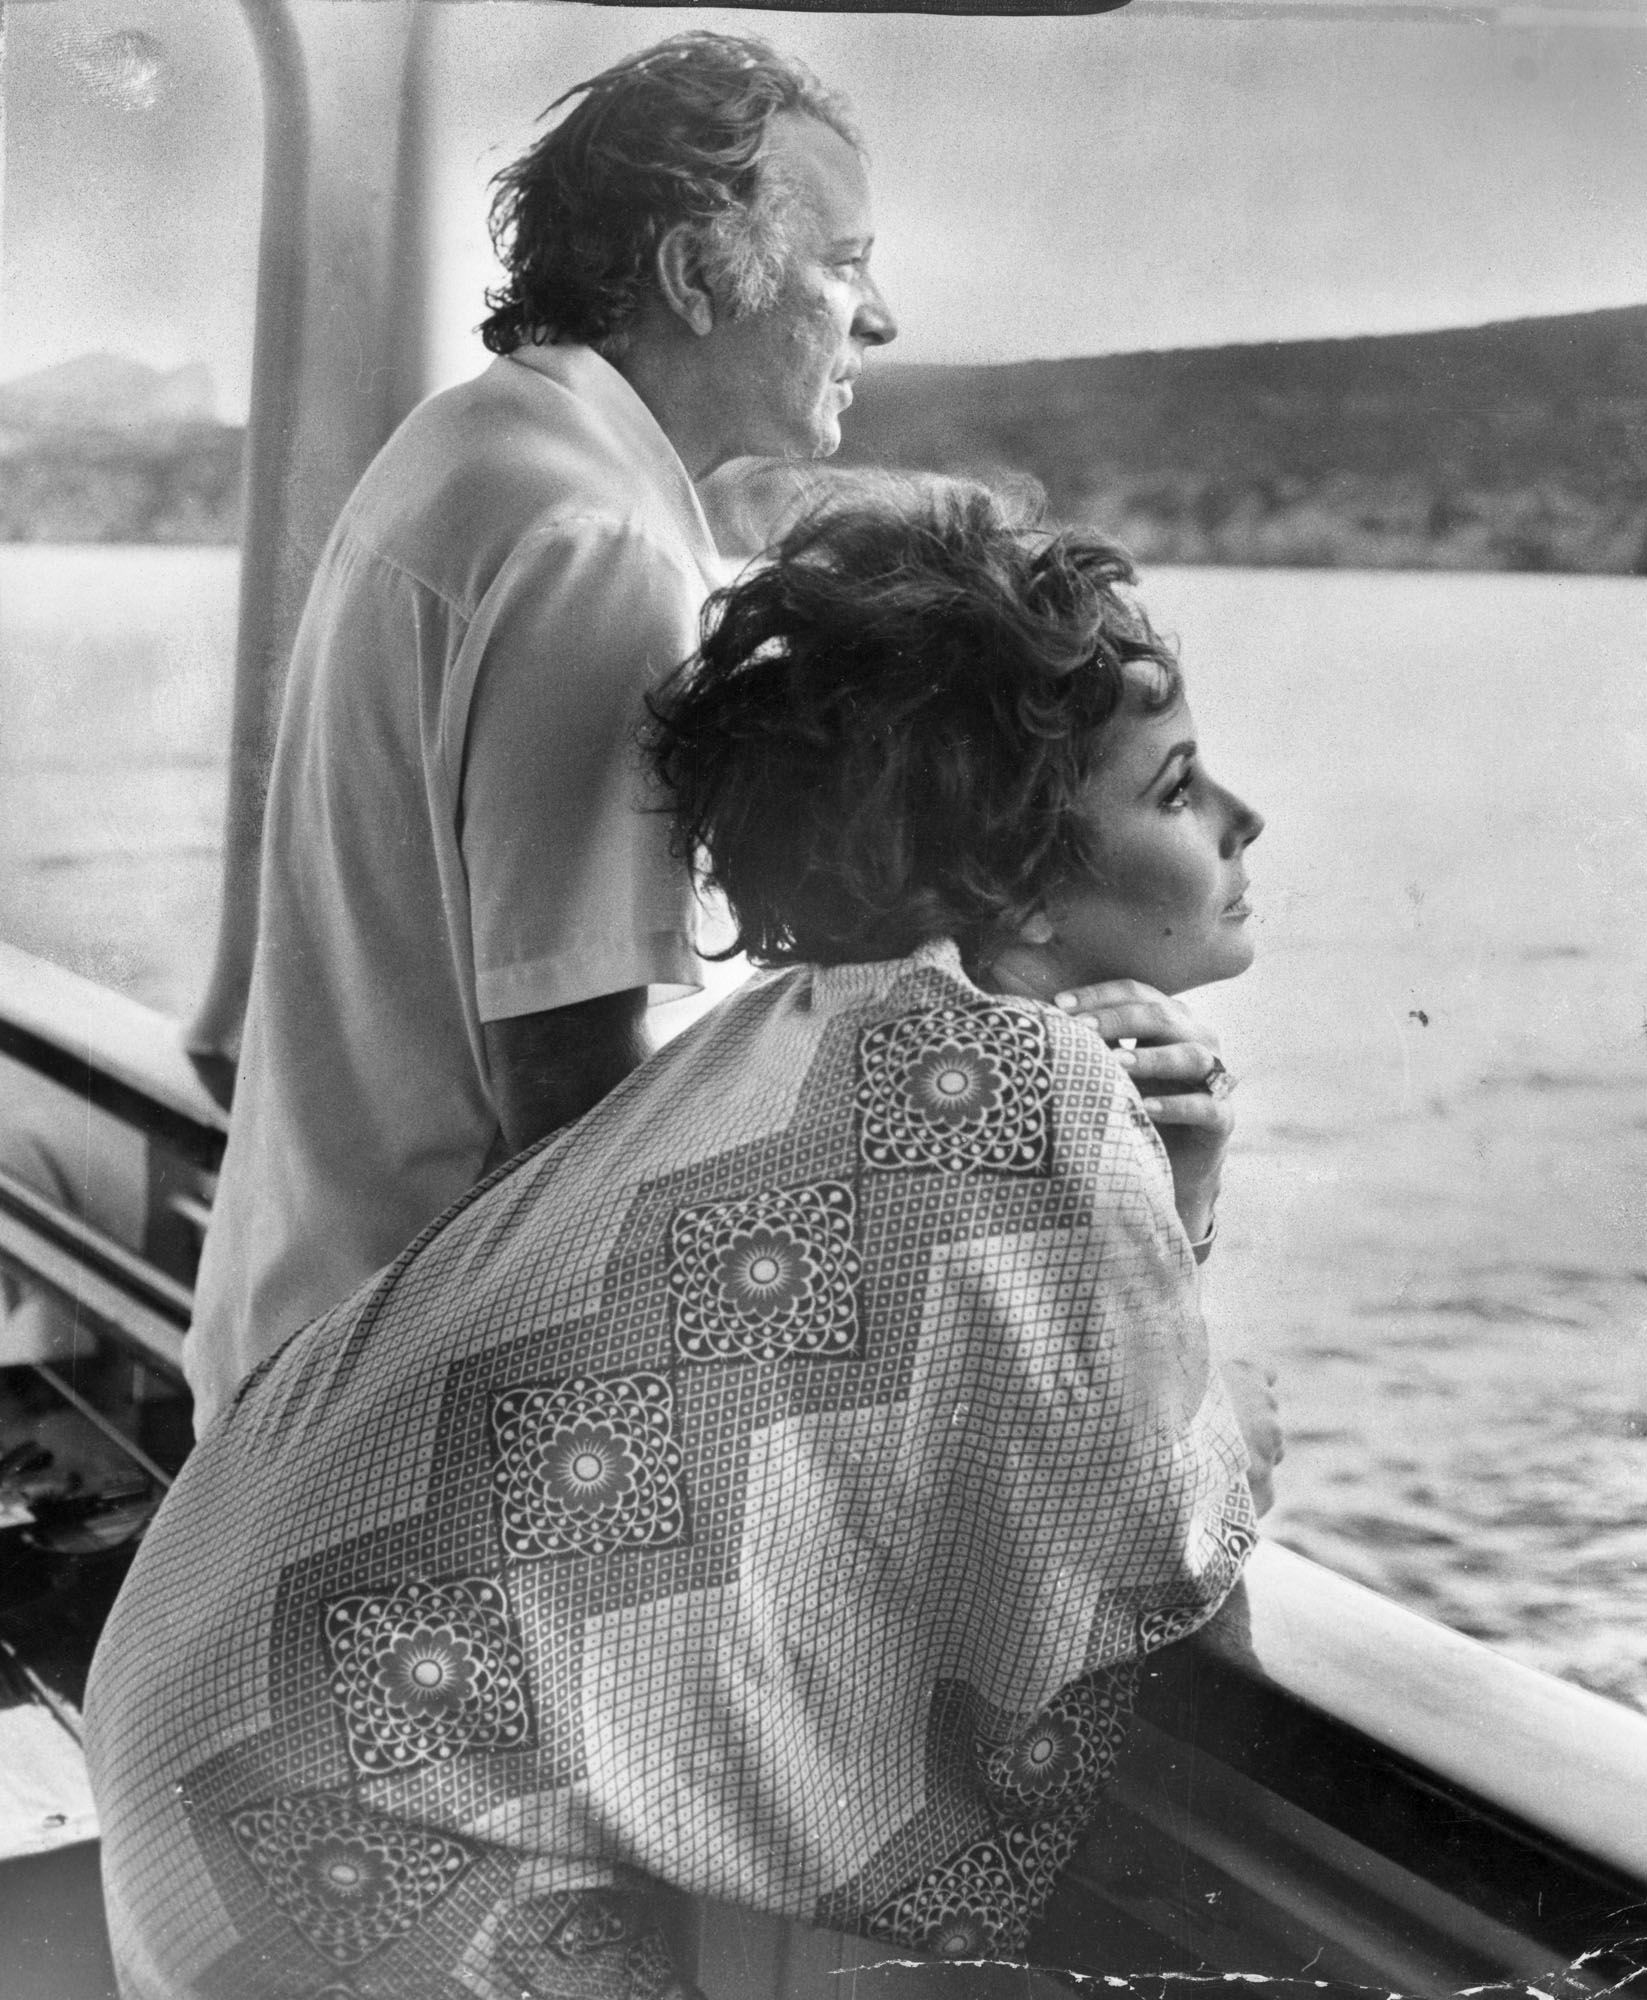 Elizabeth Taylor Spent A Lot Of Time On Yachts In 2020 Elizabeth Taylor Richard Burton Elizabeth Taylor Burton And Taylor